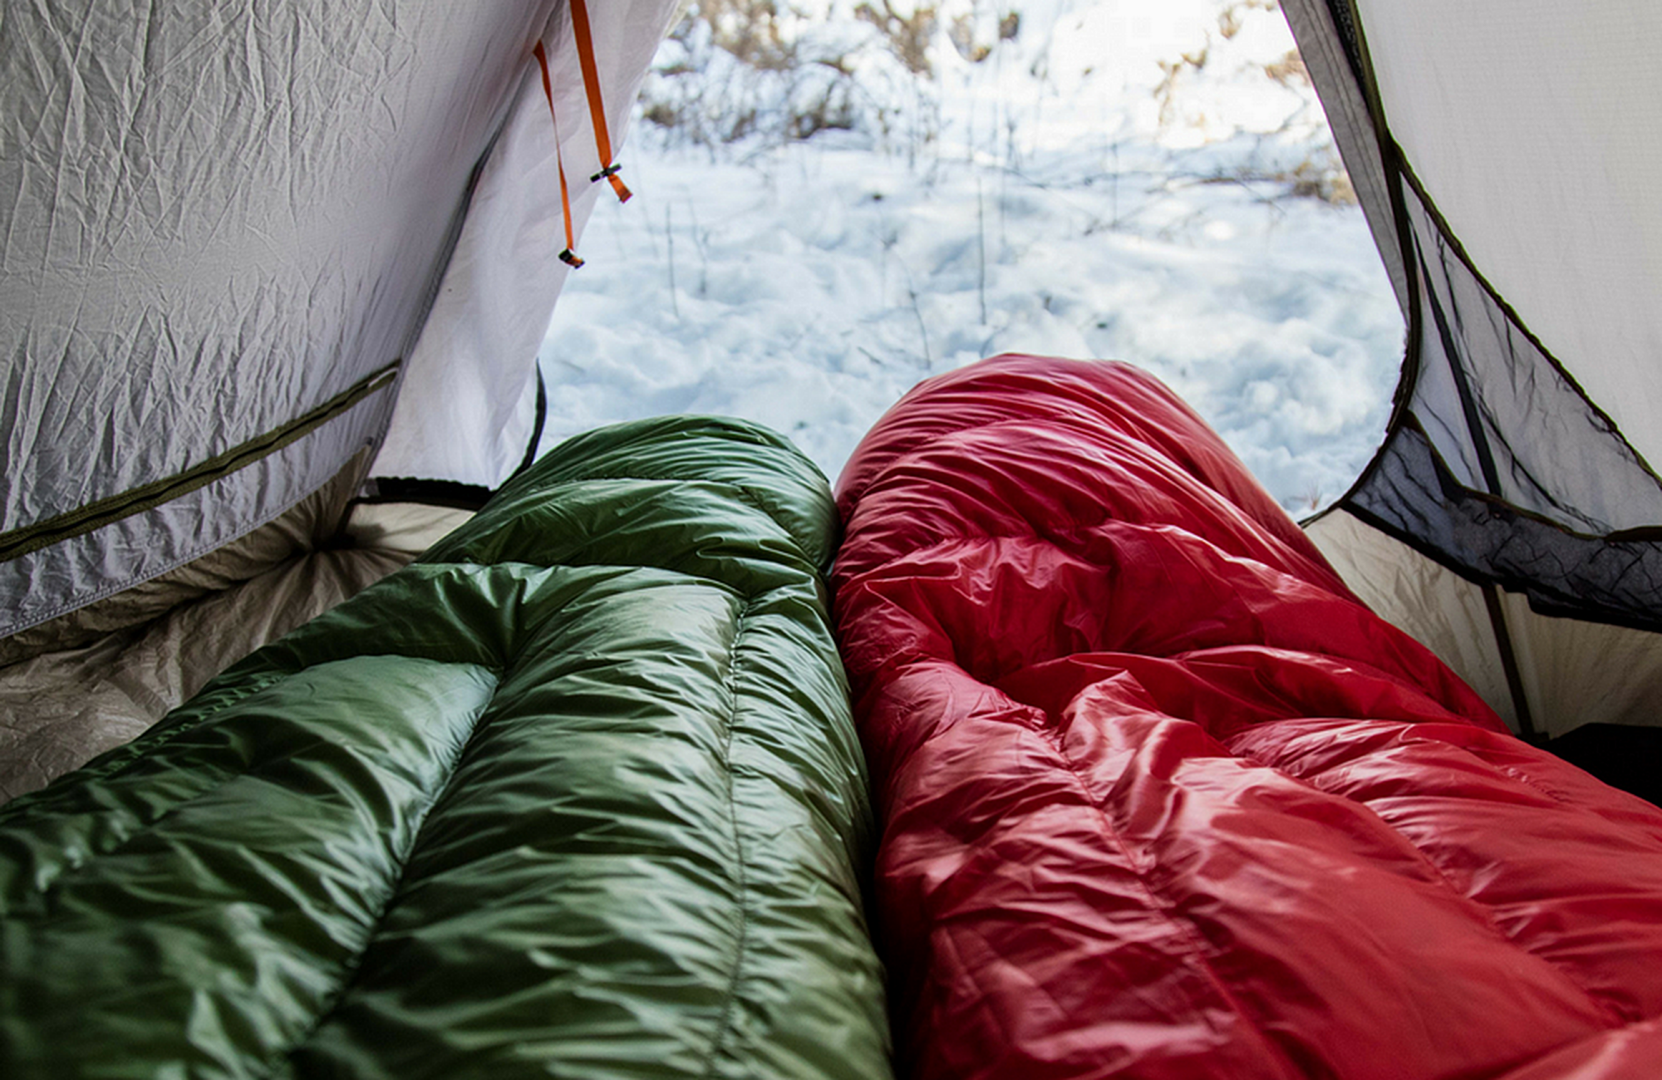 Two Nylon Sleeping Bag in a Tent